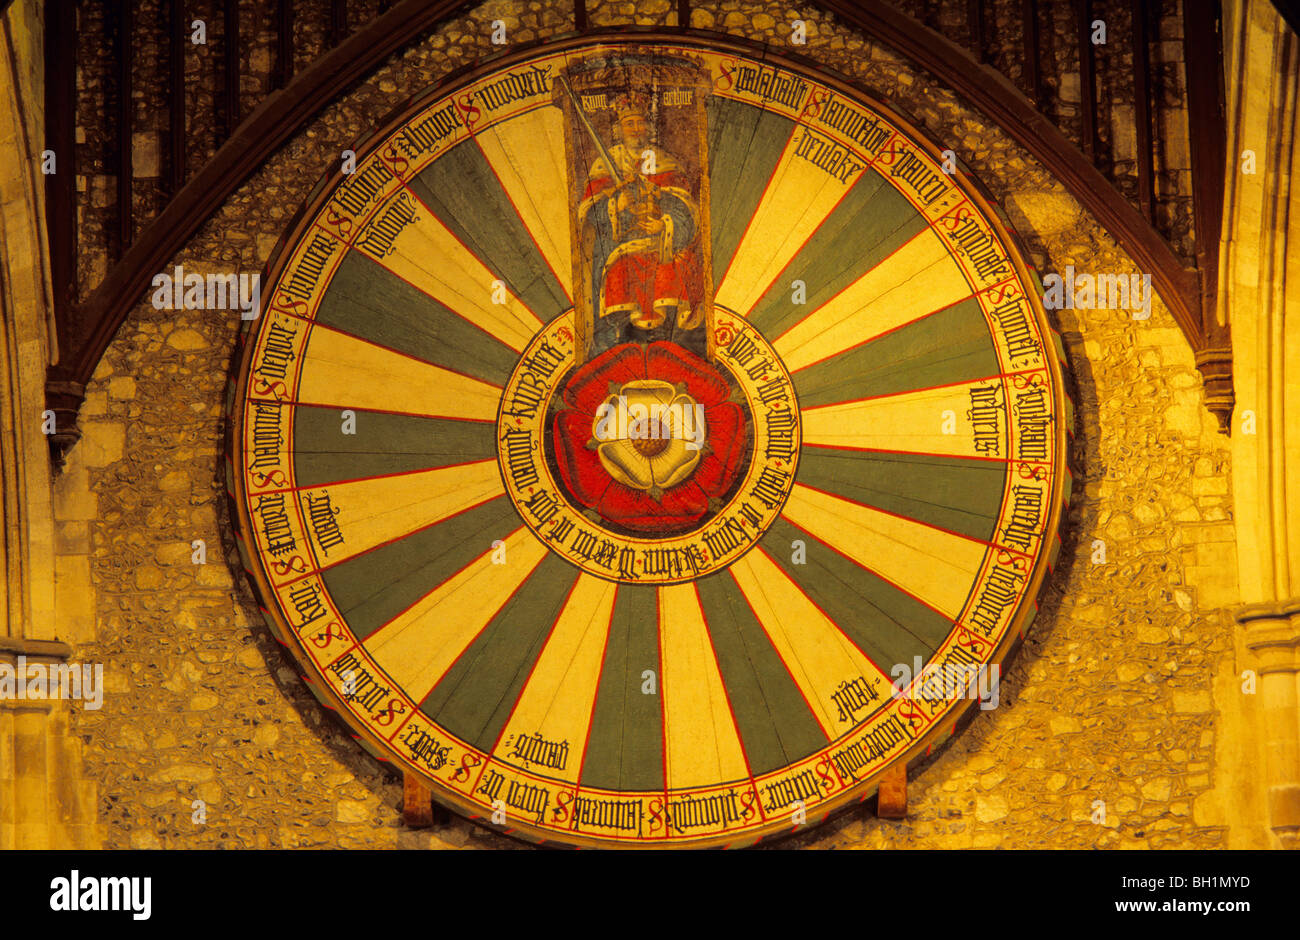 King arthur stock photos king arthur stock images alamy - Round table winchester cathedral ...